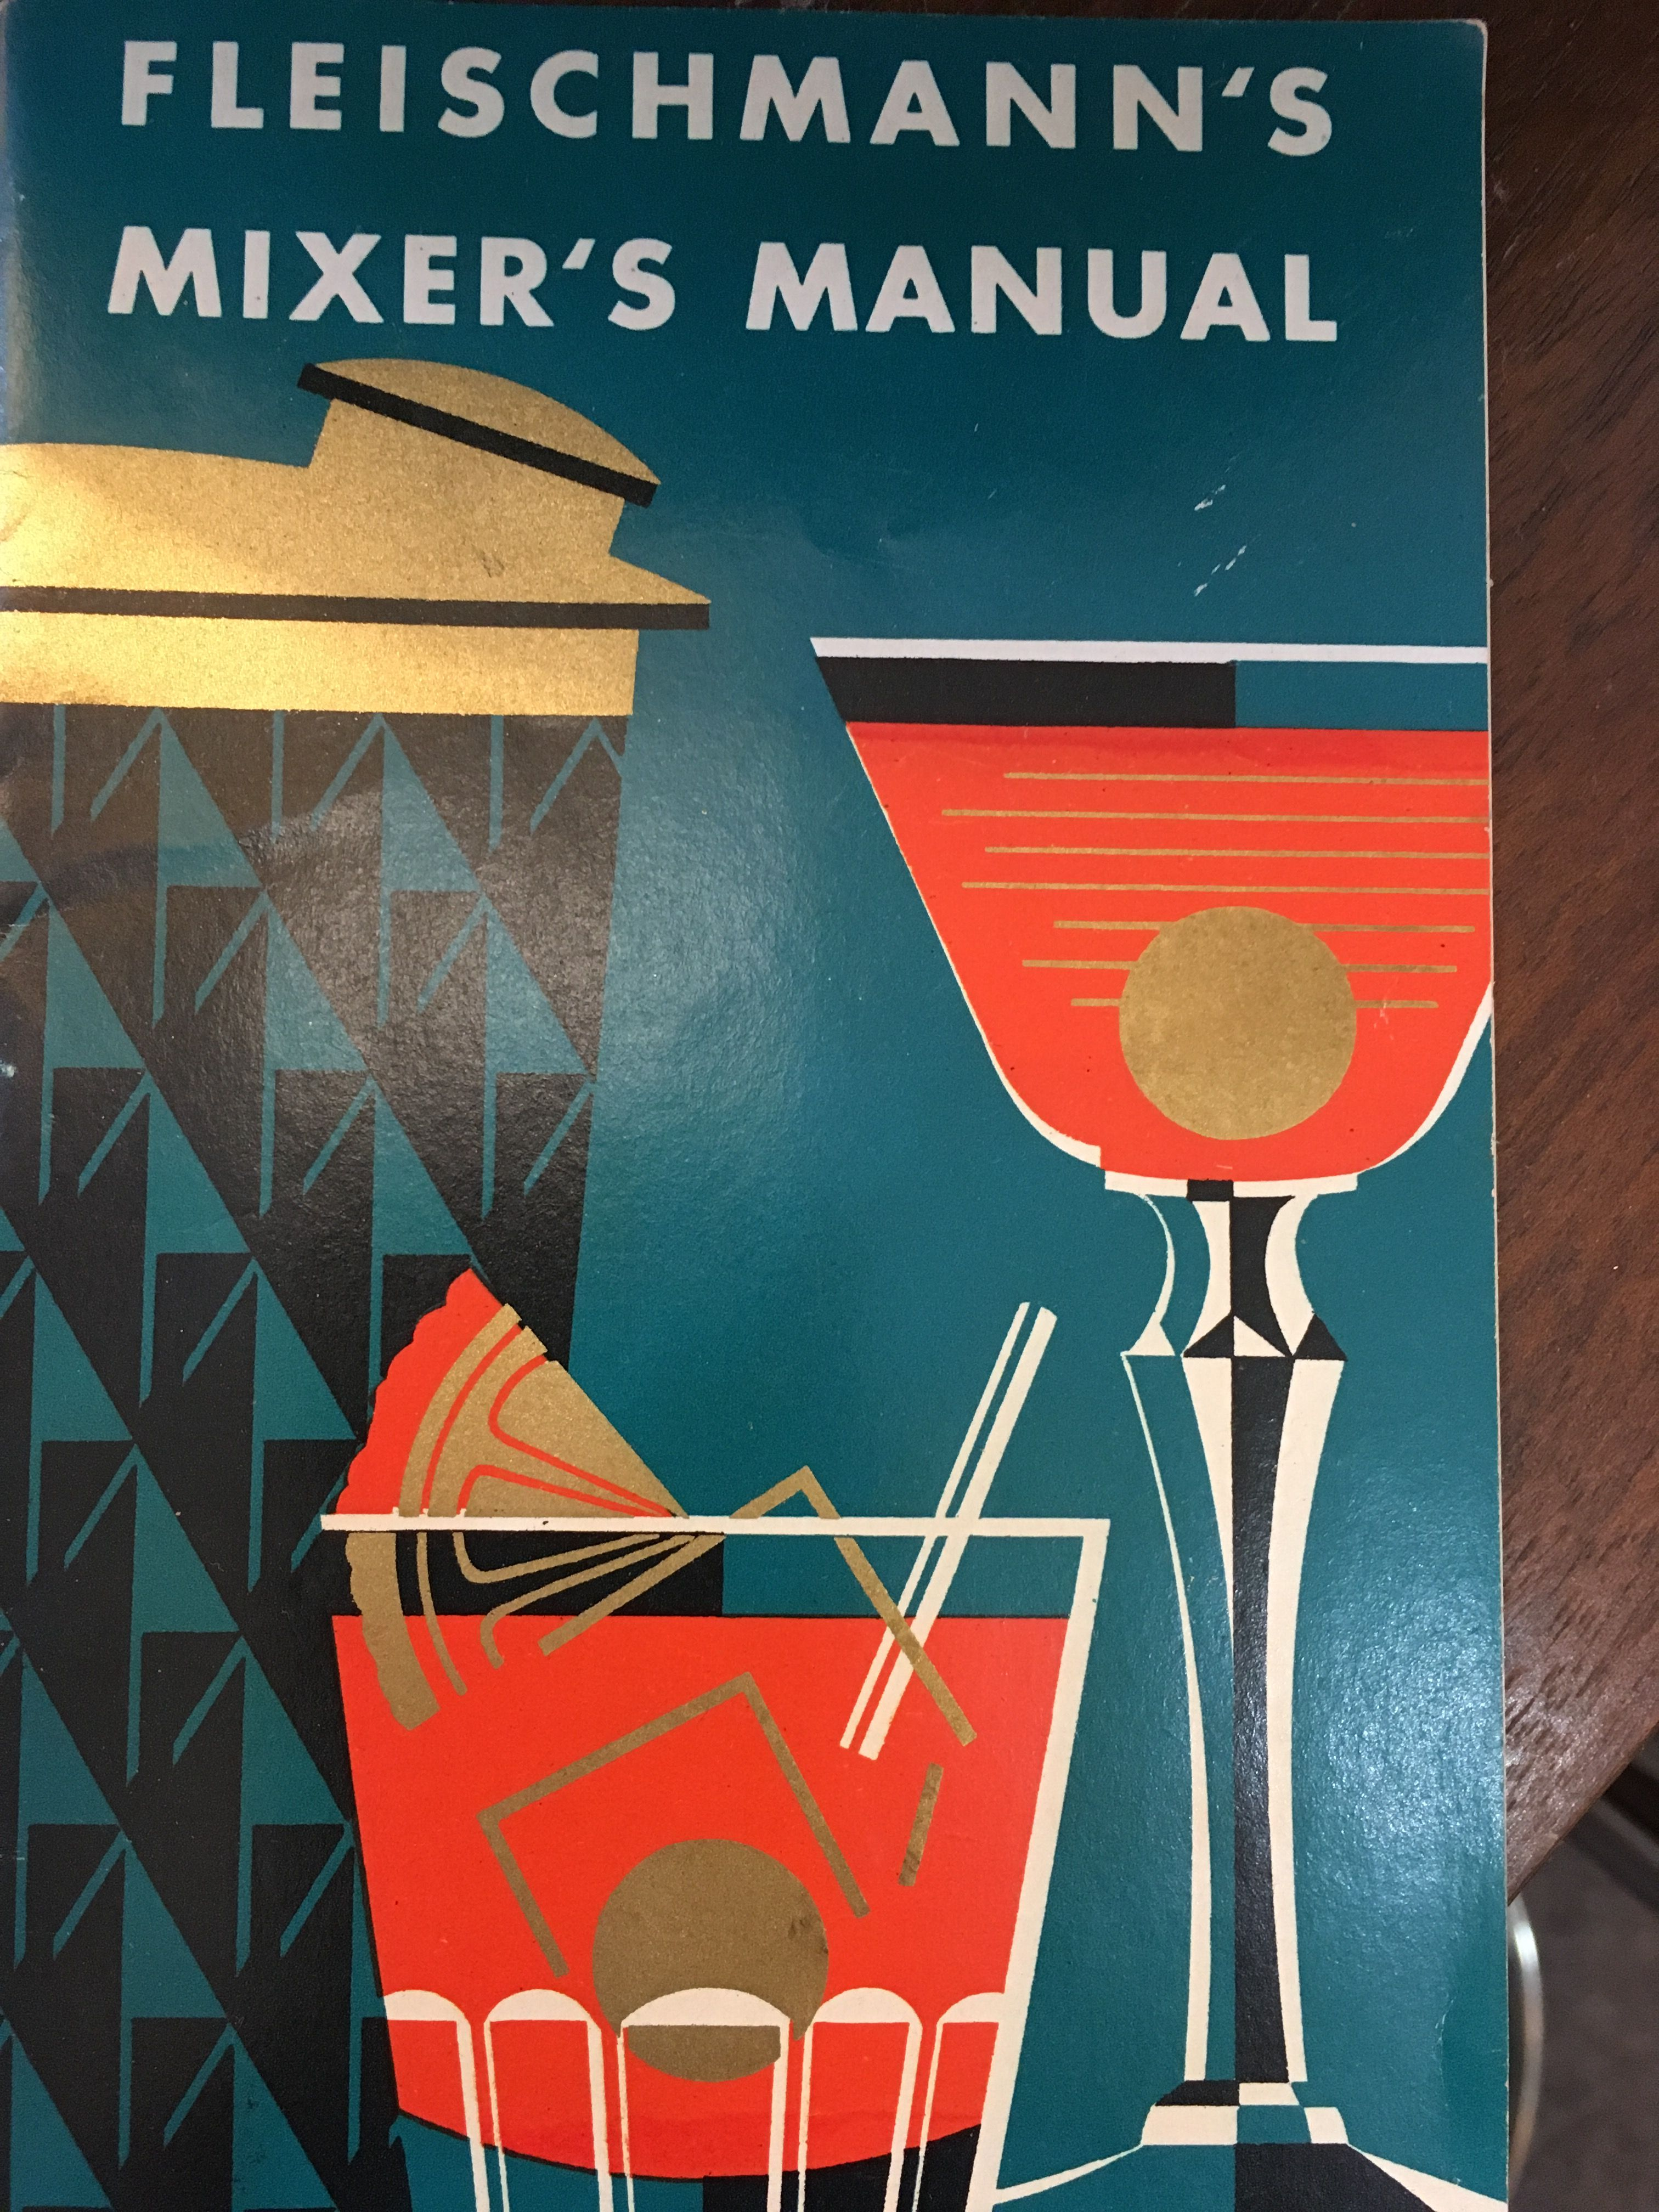 Great mid century graphic graphic art poster